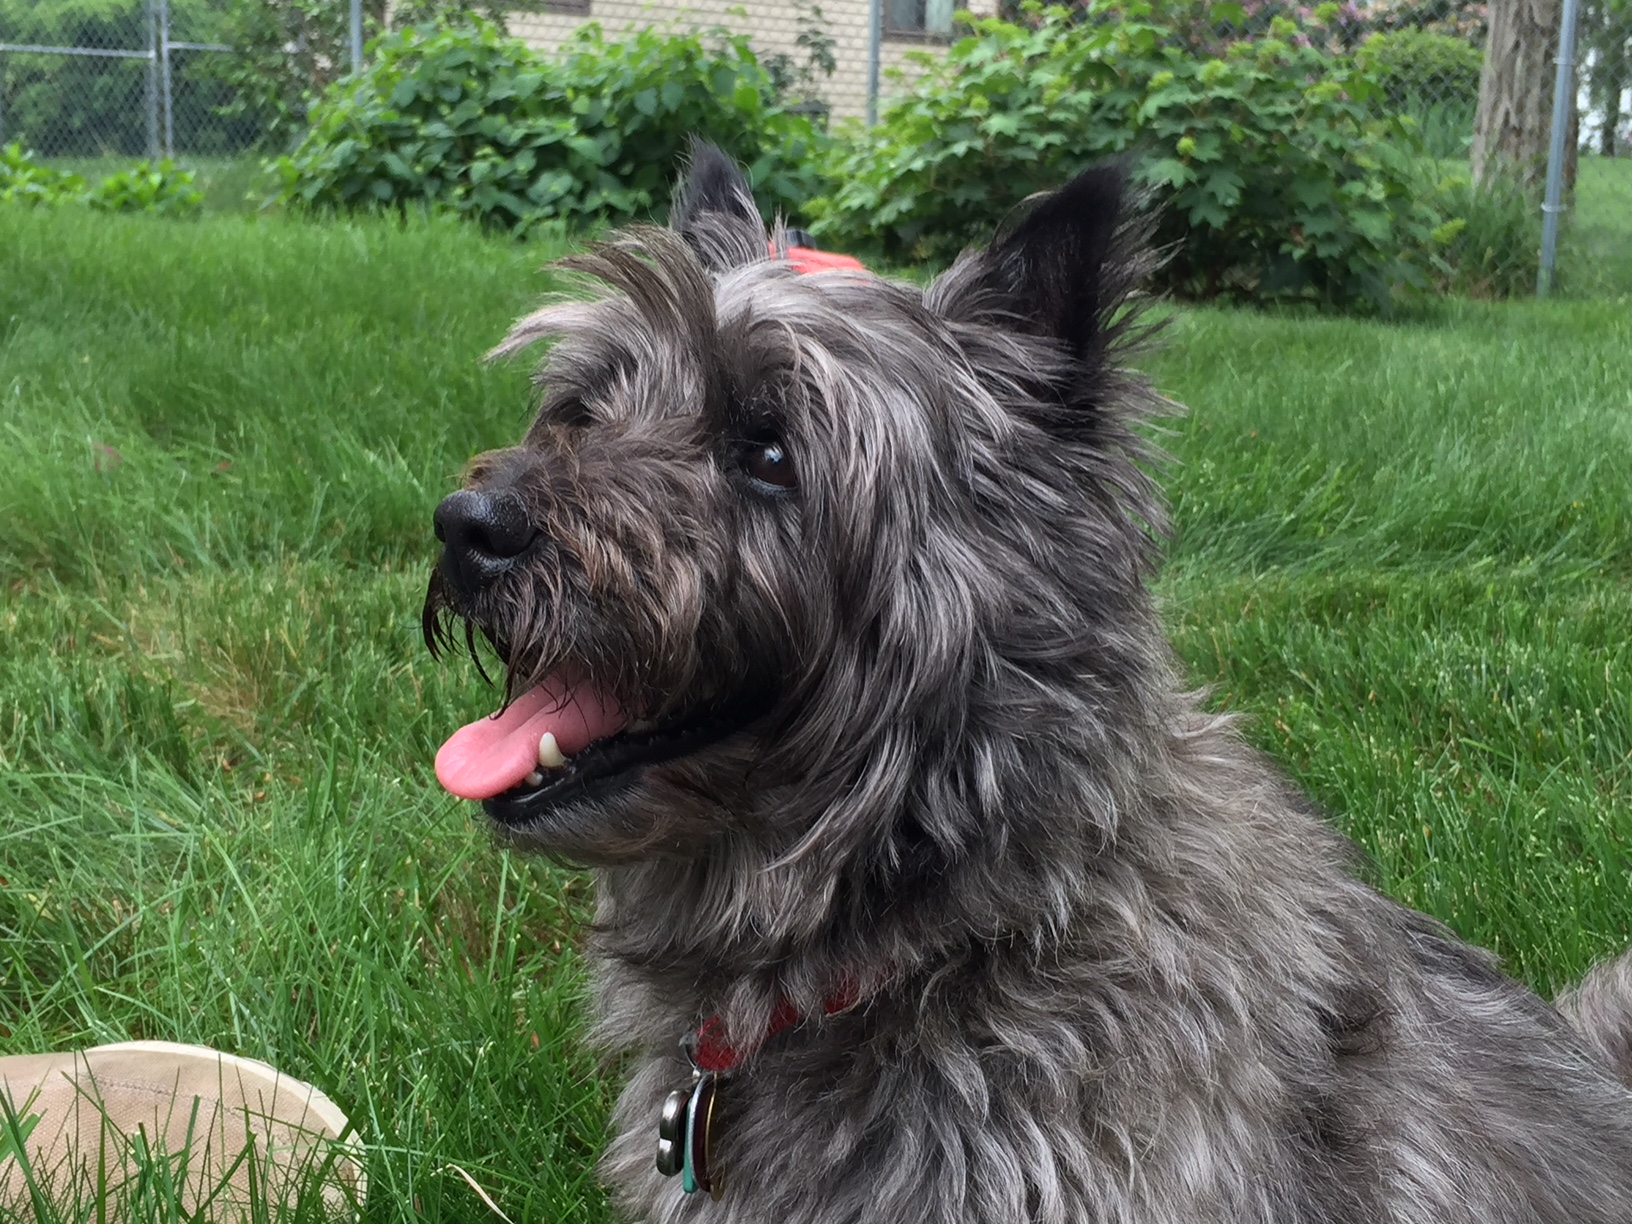 Close up shot of a Cairn Terrier looking to the right on a grassy lawn.